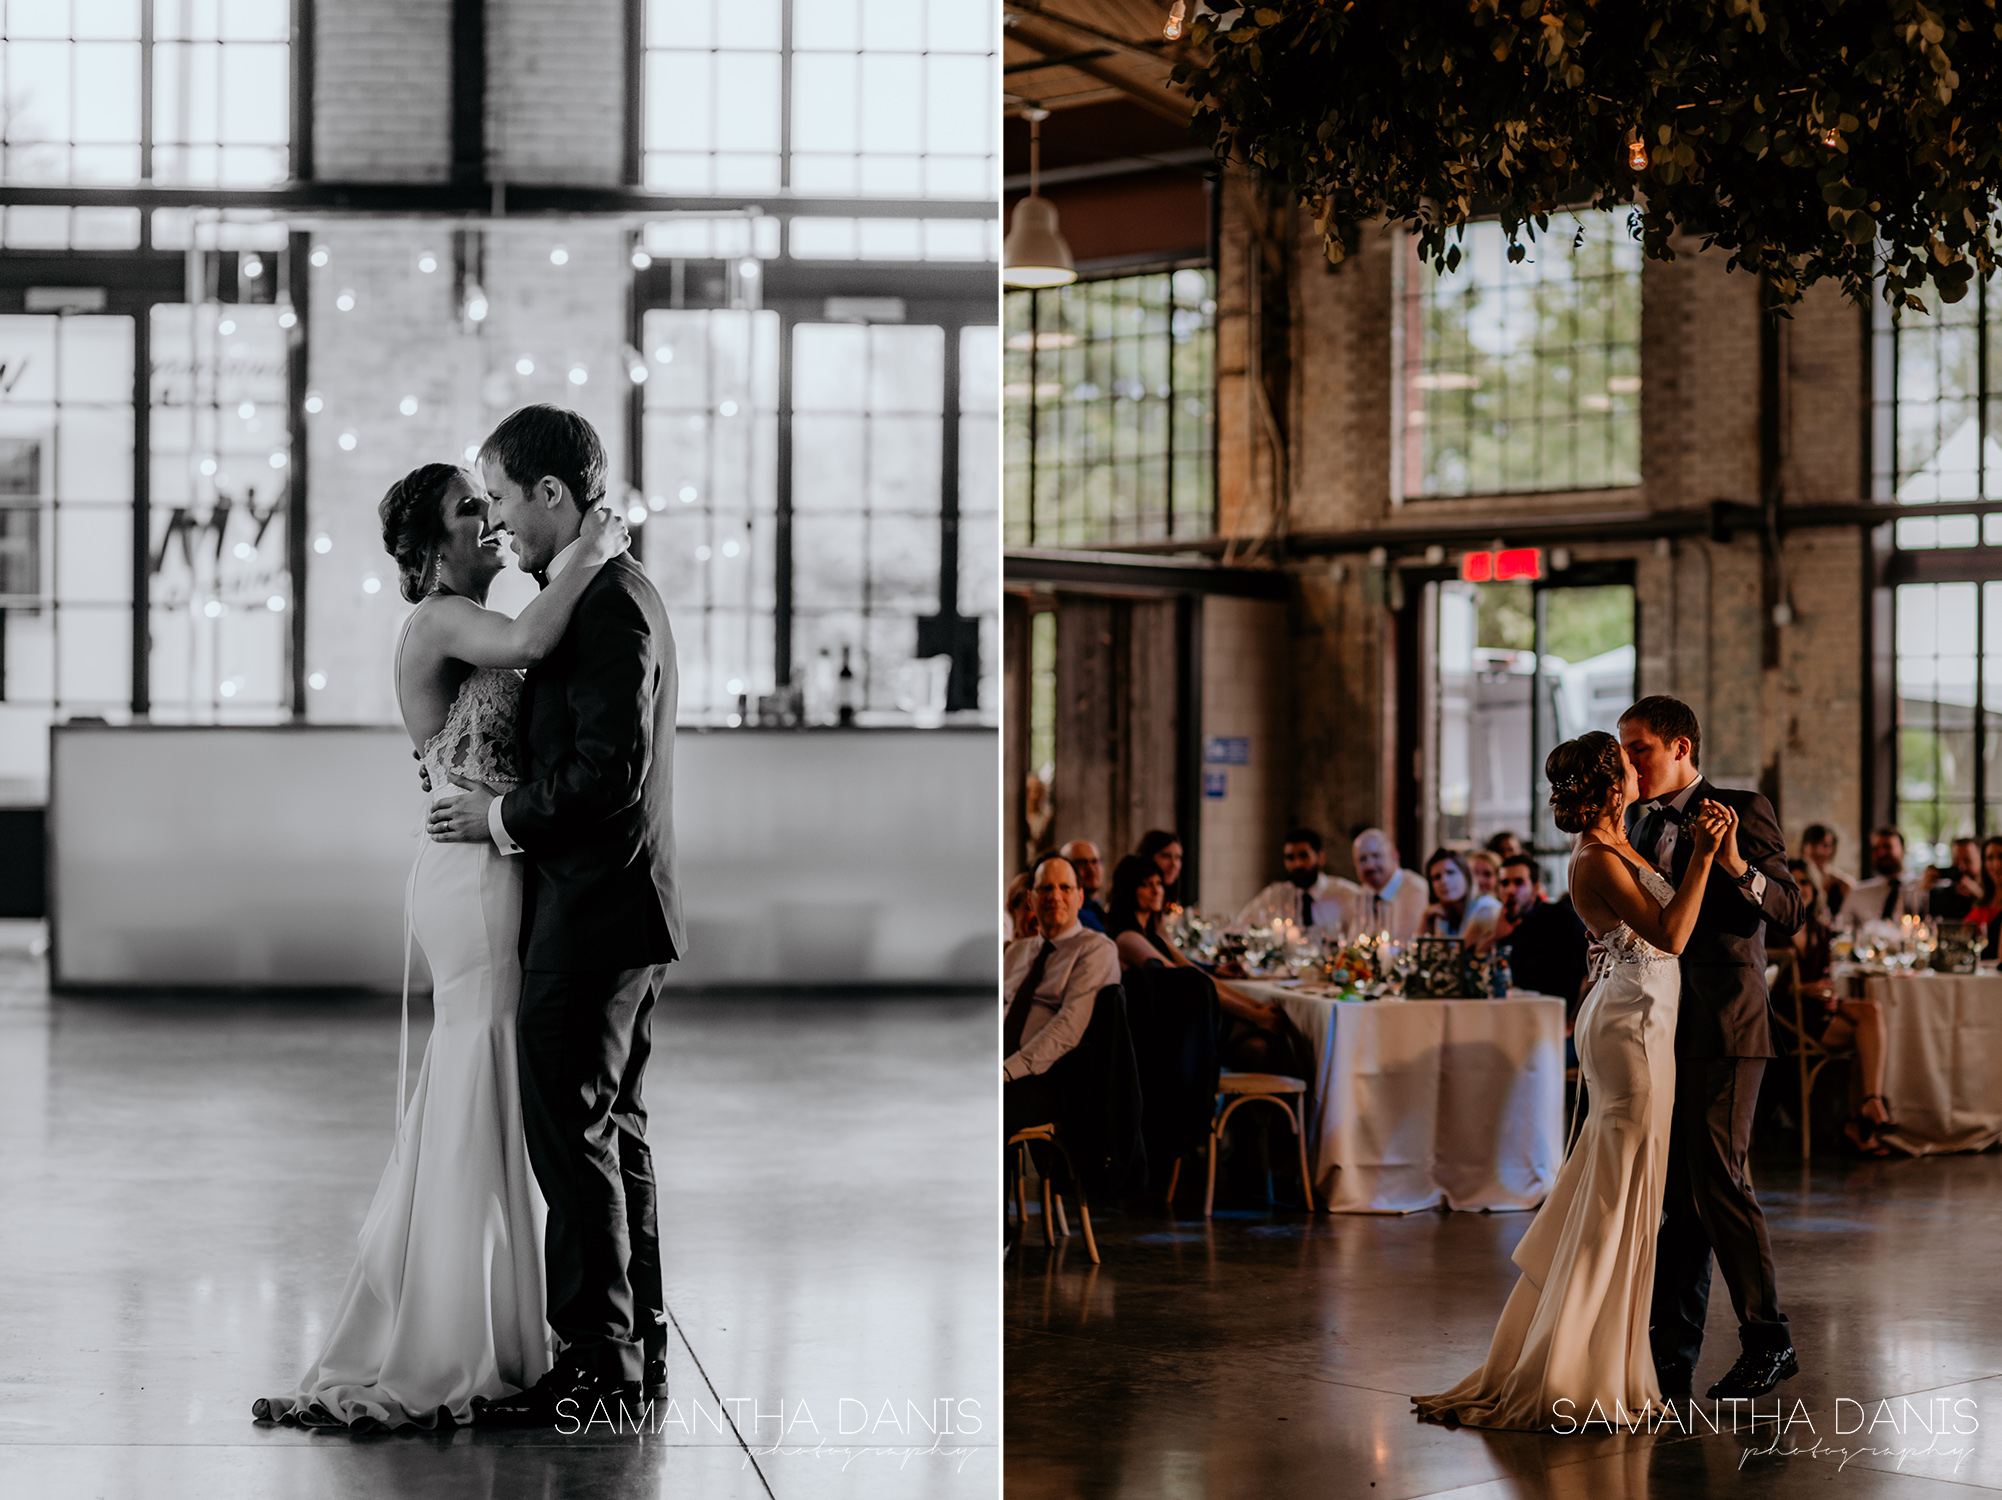 Horticulture Building Ottawa RedBlacks Cheerleader Samantha Danis Photography Ottawa Wedding Photographer